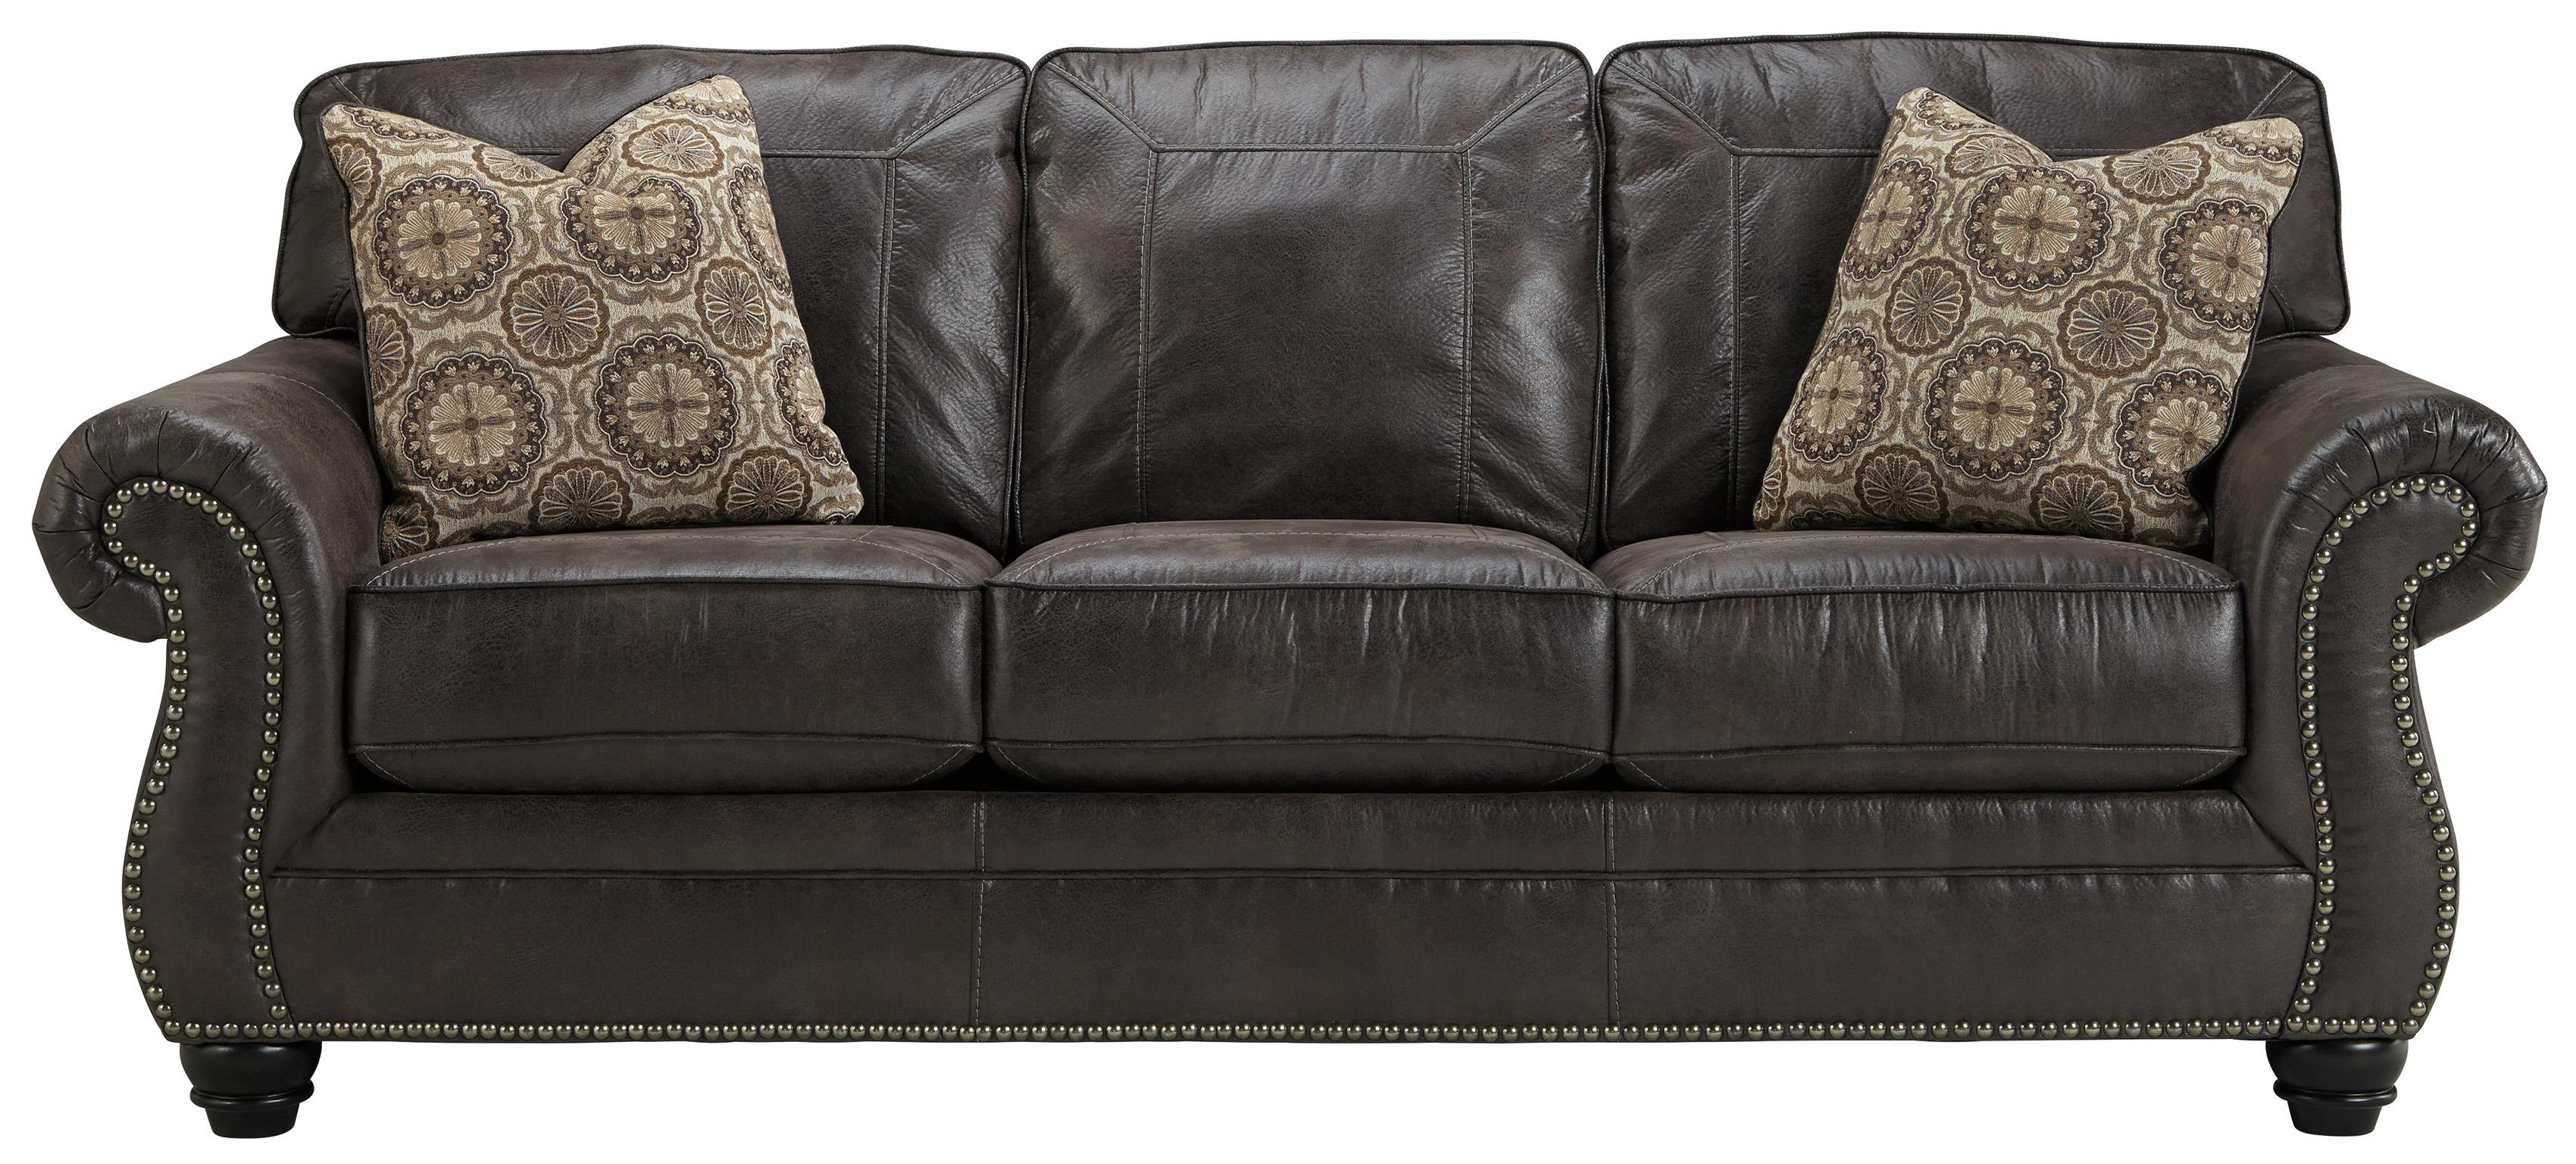 Breville Sofa by Benchcraft at Turk Furniture